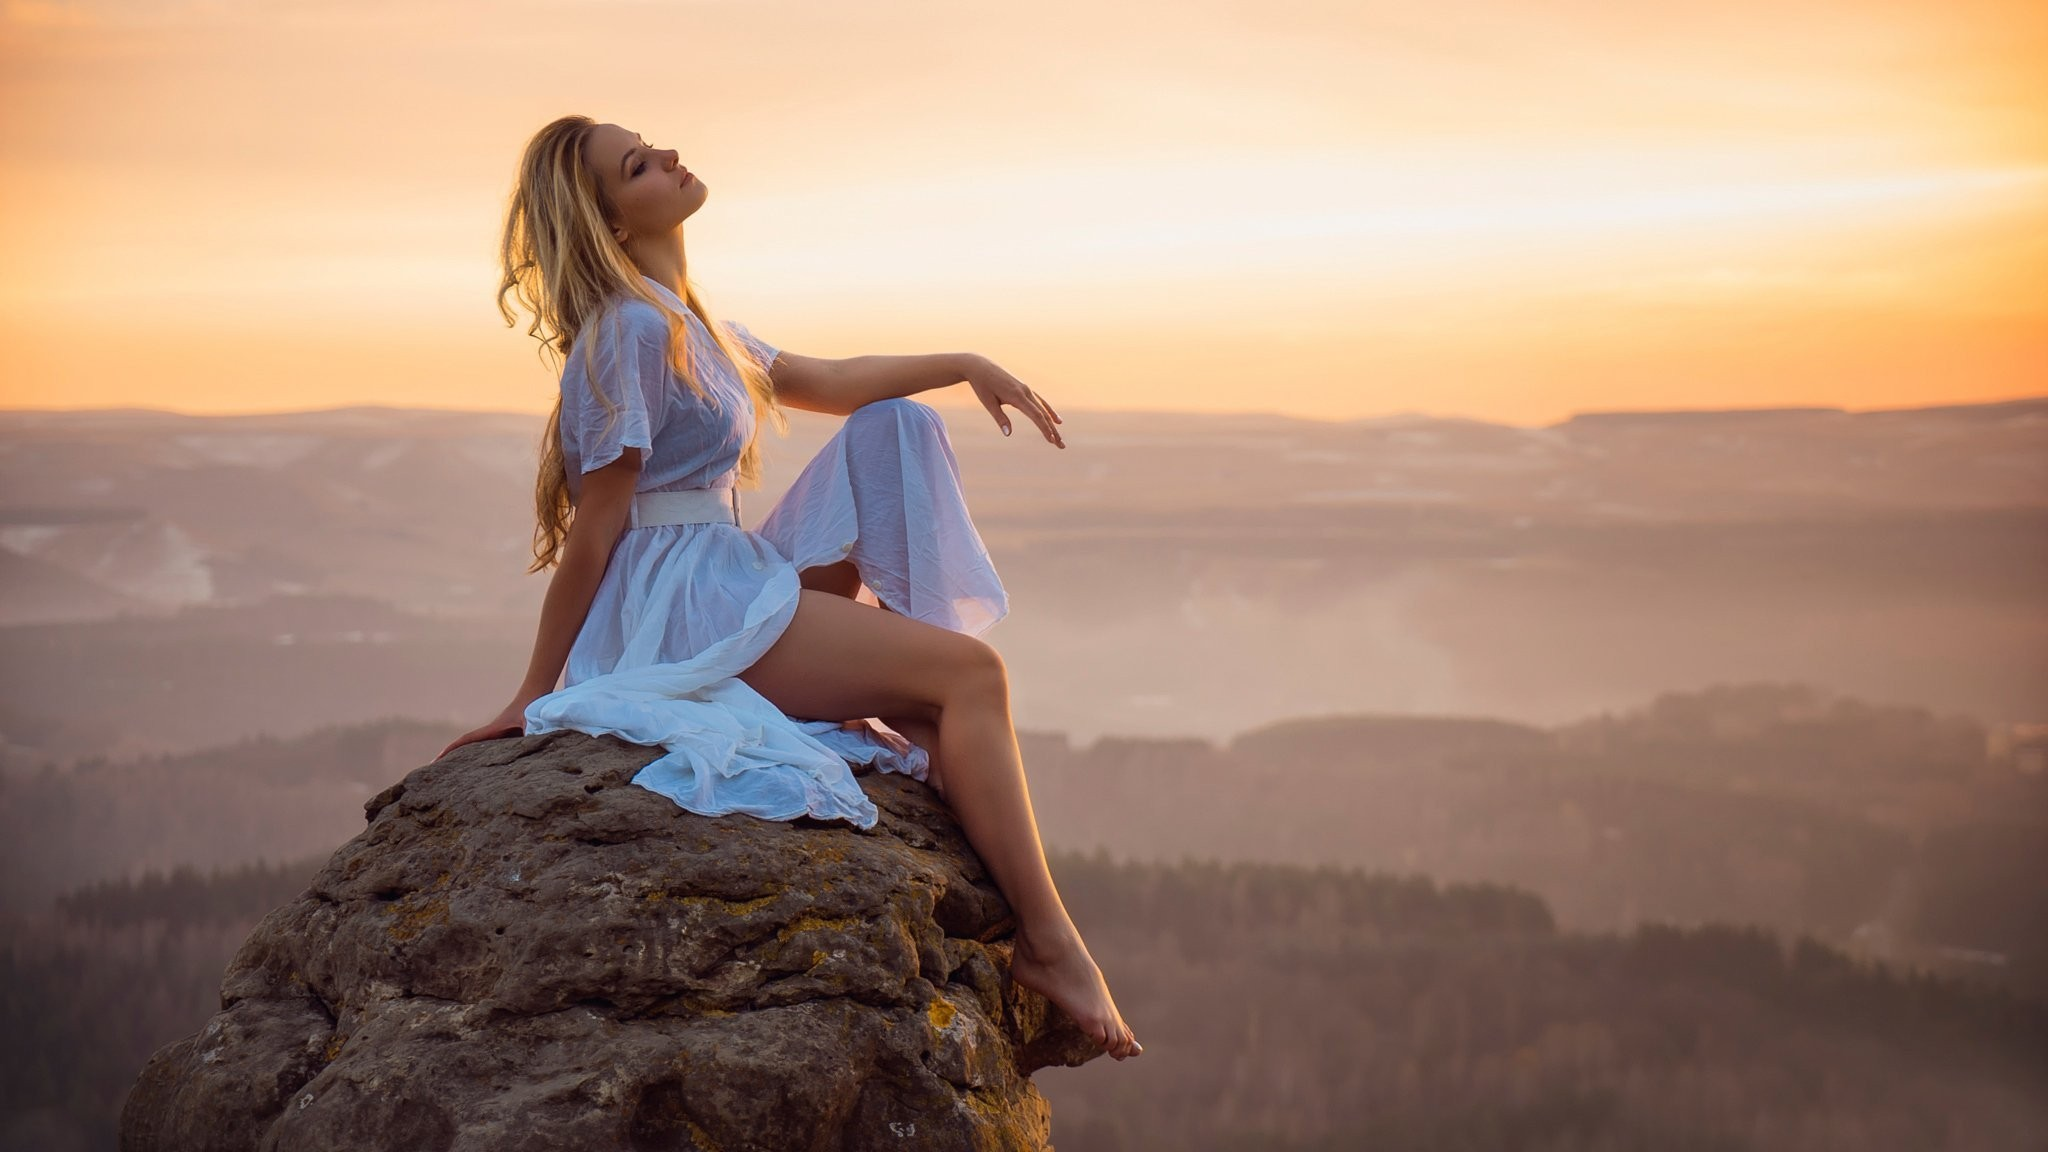 http://freshwidewallpapers.com/download/299/2048x1152/none/sunset-alone-girl-white-dress-feet-stone-height-the-distance-landscape.jpg